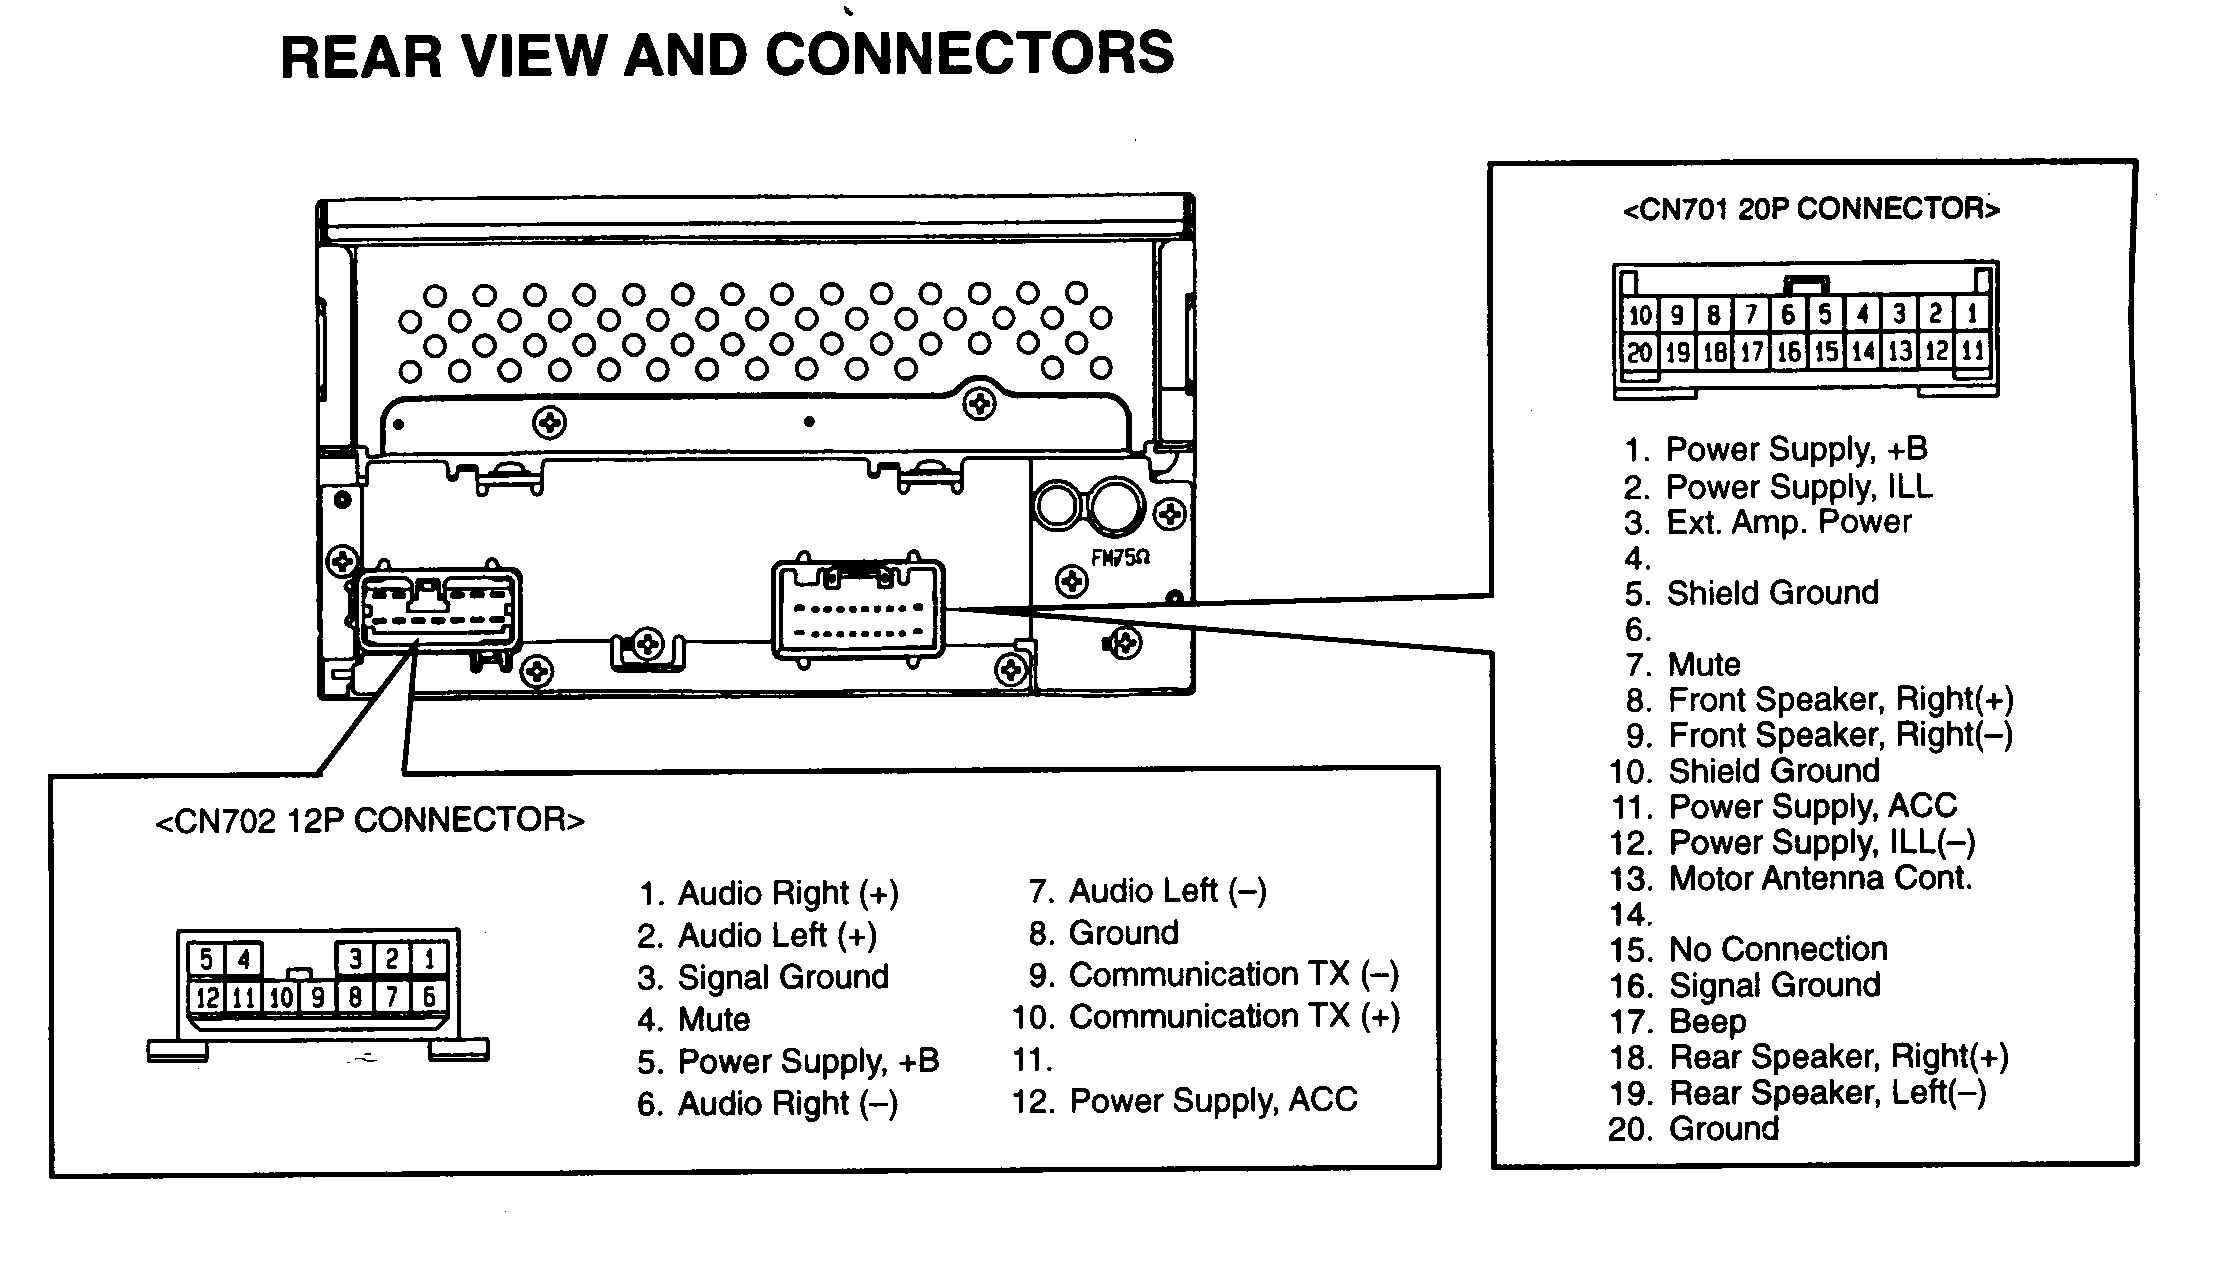 Wiring Diagram for Car Audio with Factory Car Stereo Wiring Diagrams Wiring Diagram Of Wiring Diagram for Car Audio